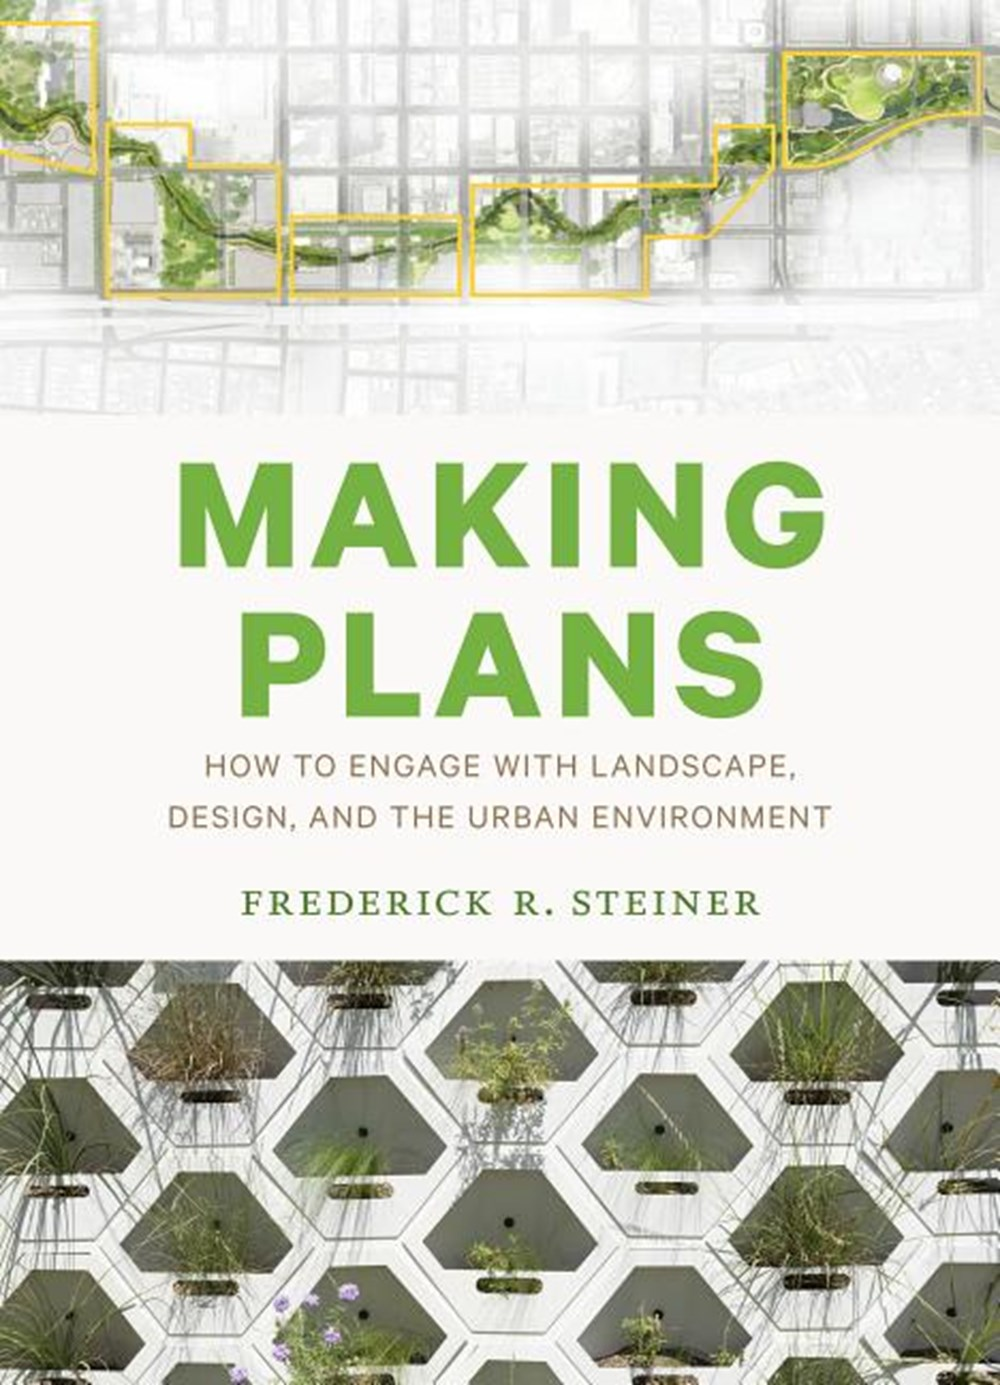 Making Plans How to Engage with Landscape, Design, and the Urban Environment